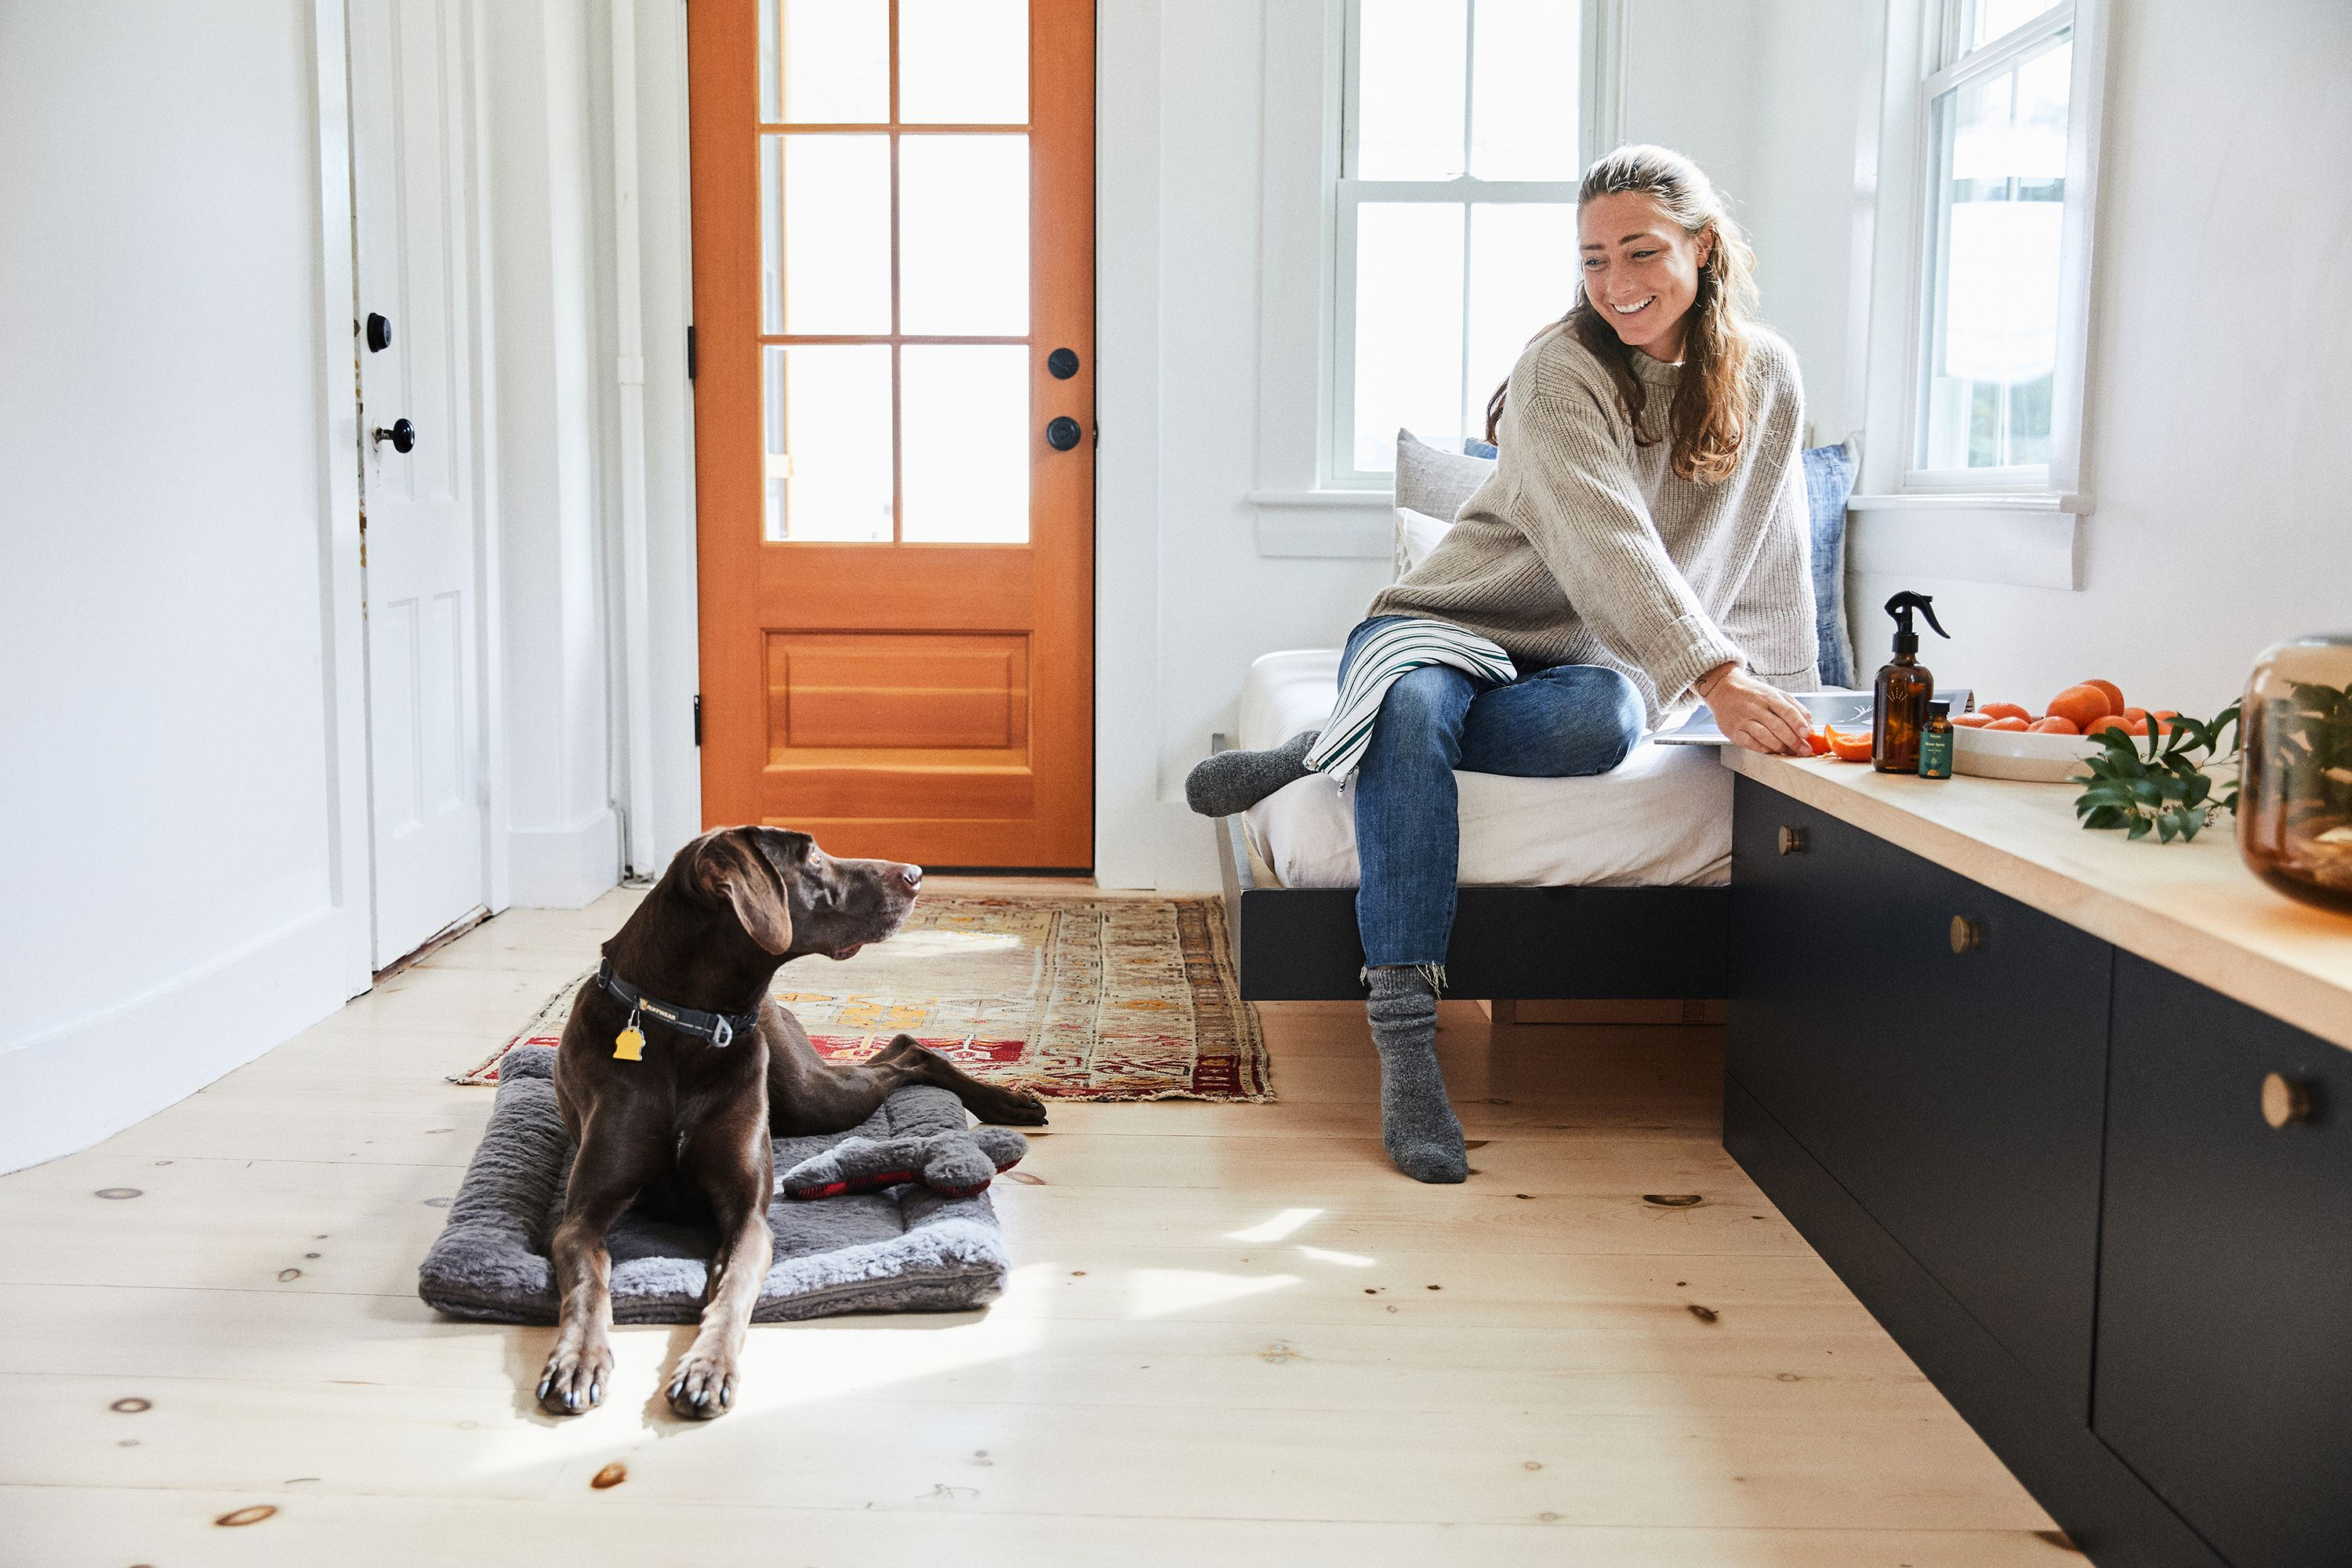 Women and dog sitting together in a home entryway